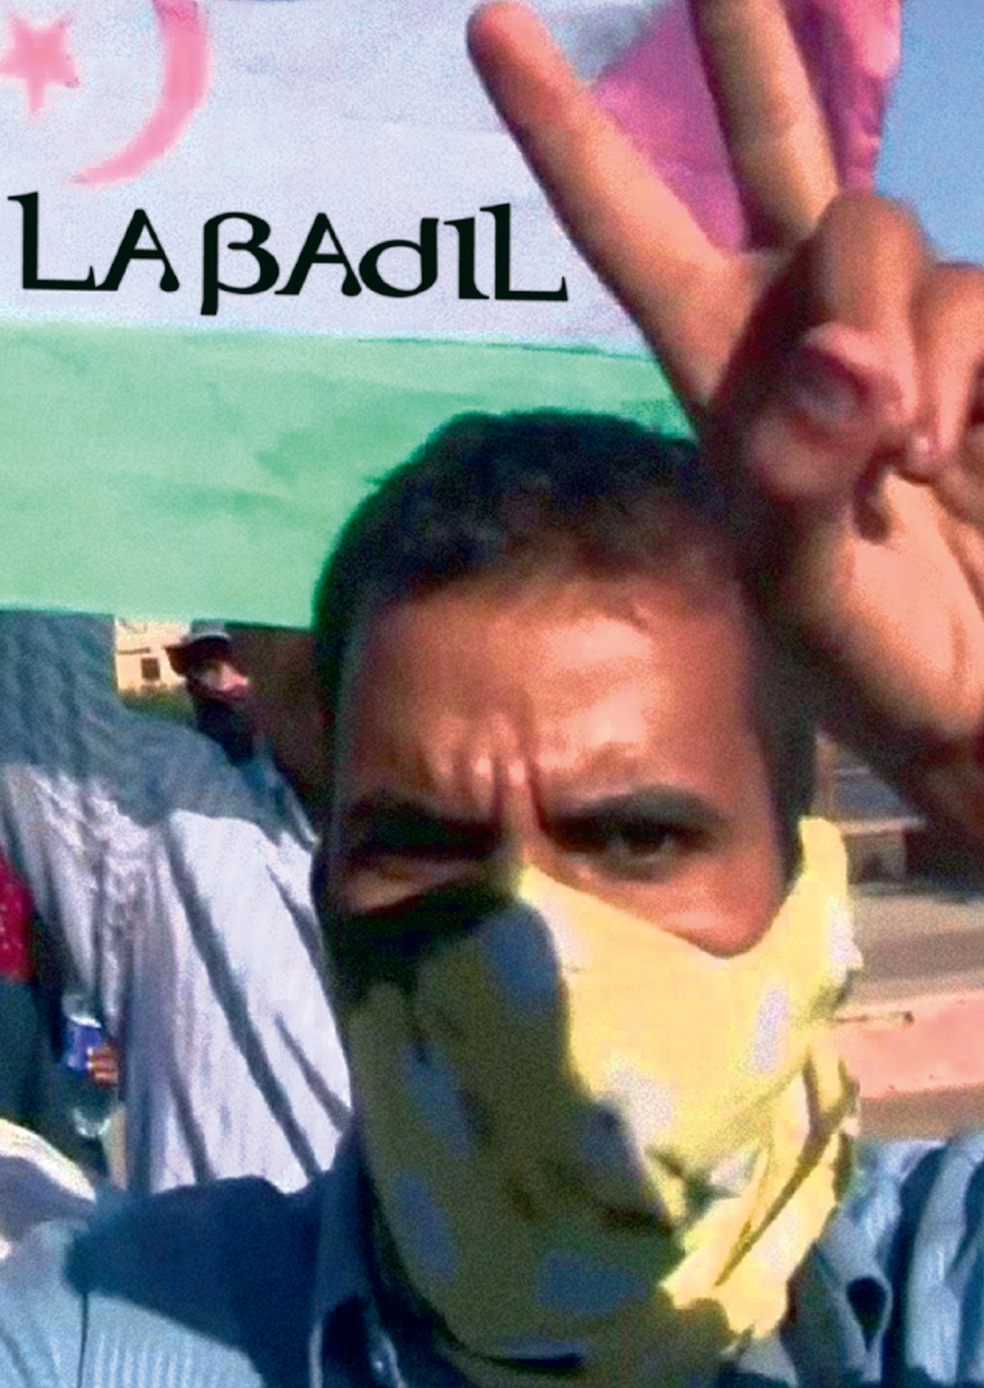 La Badil DVD cover